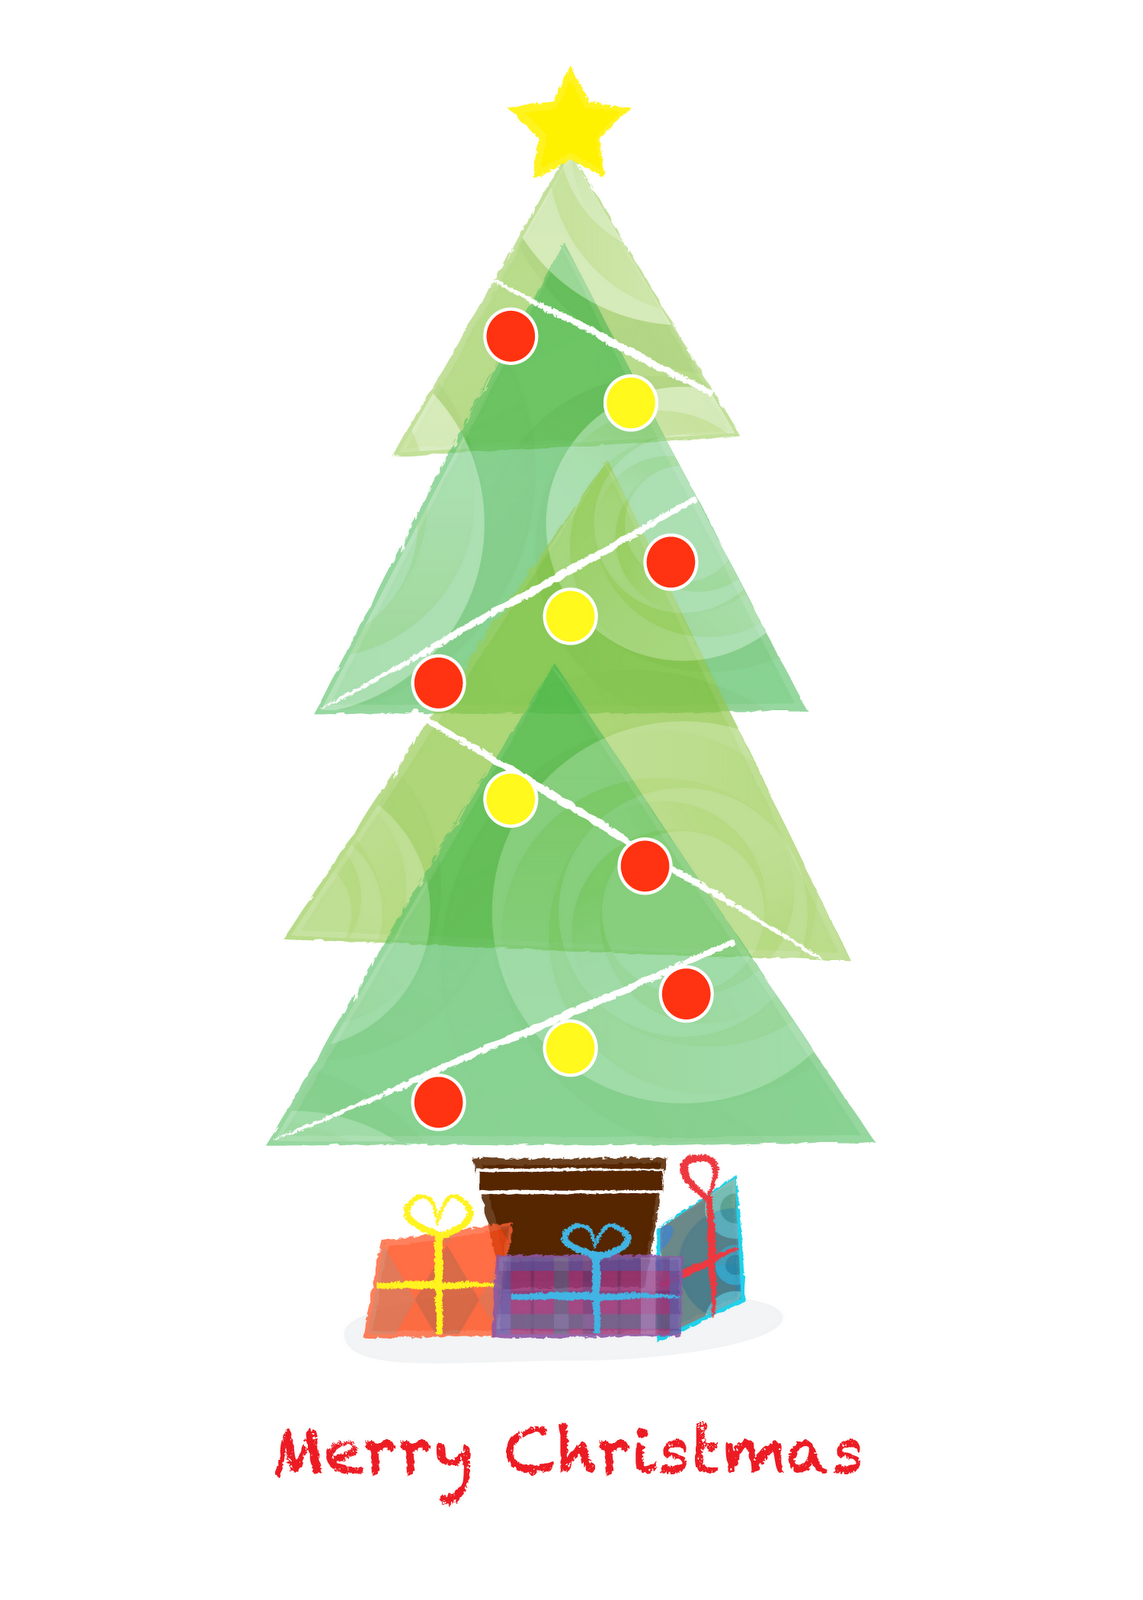 Creative pinch christmas cards on zazzle for Christmas tree cards to make